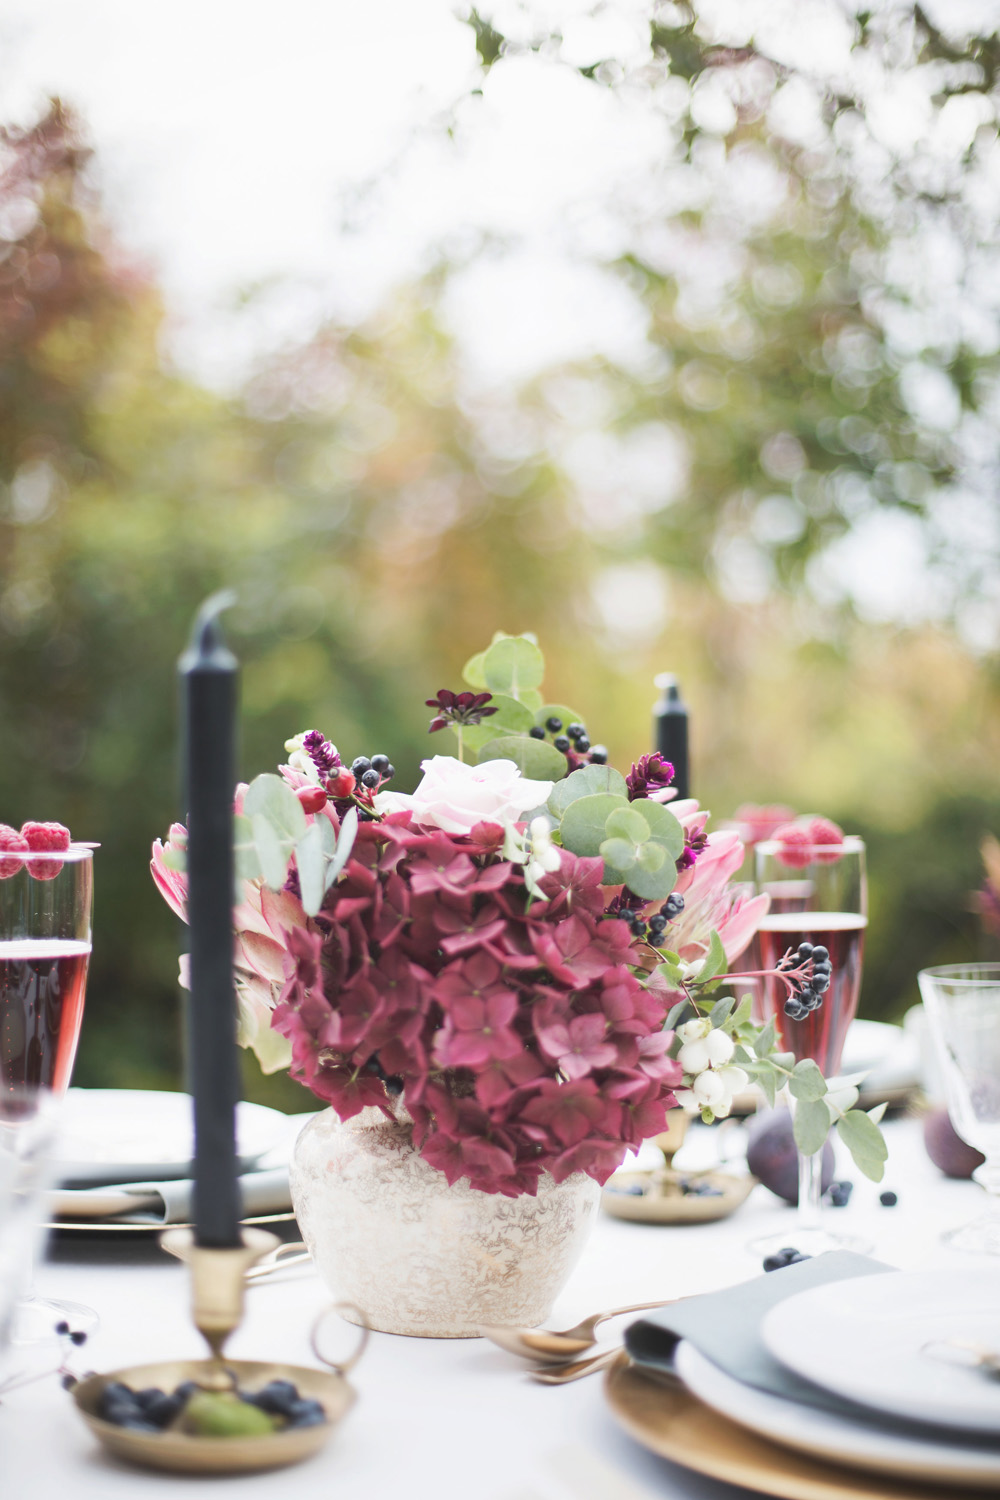 Autumn wedding table Melissa Beattie Tebbey (2)